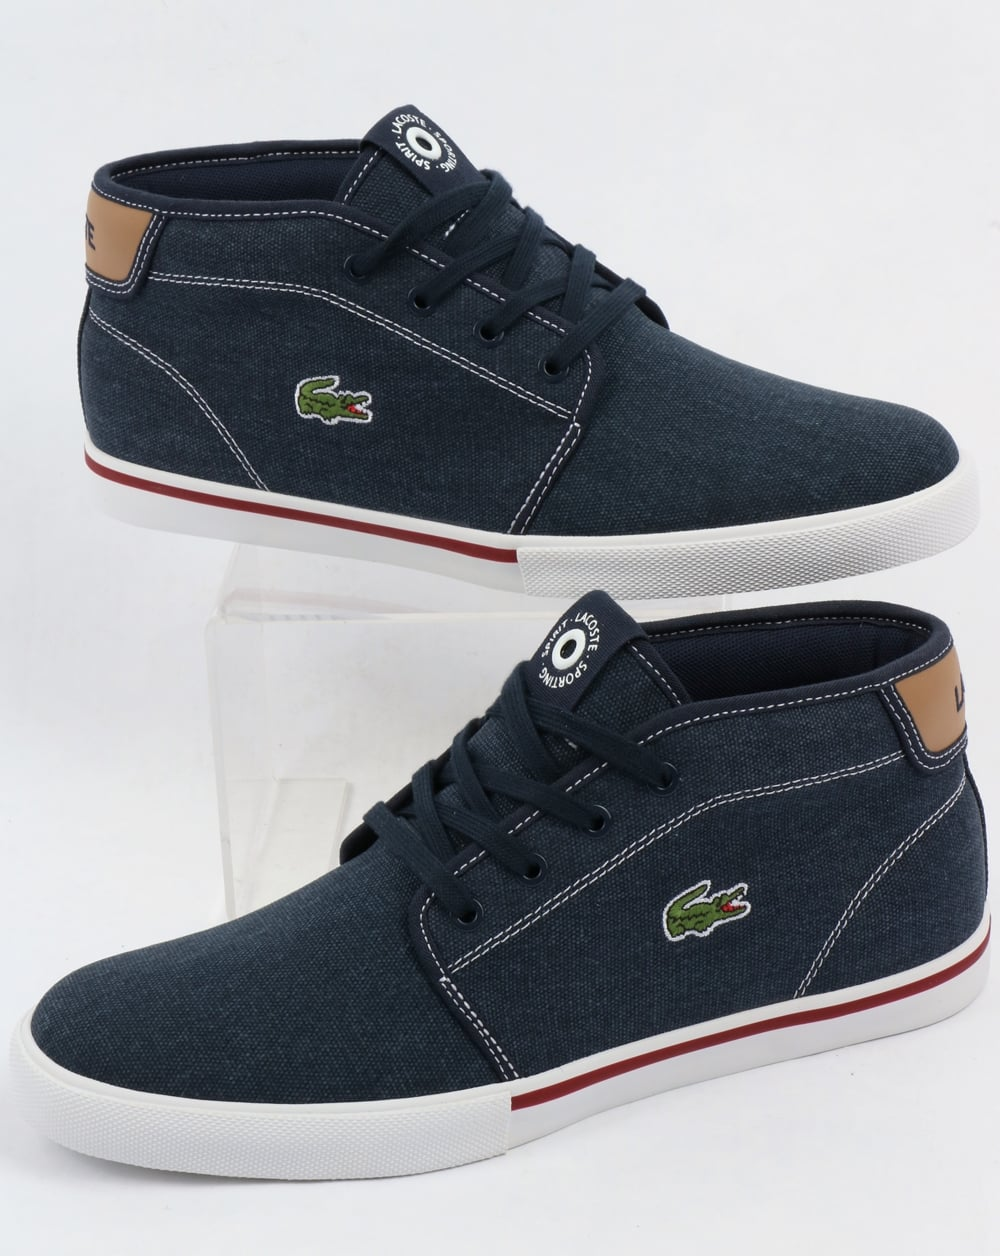 52d6fb597 Lacoste Lacoste Ampthill Chukka Navy Tan